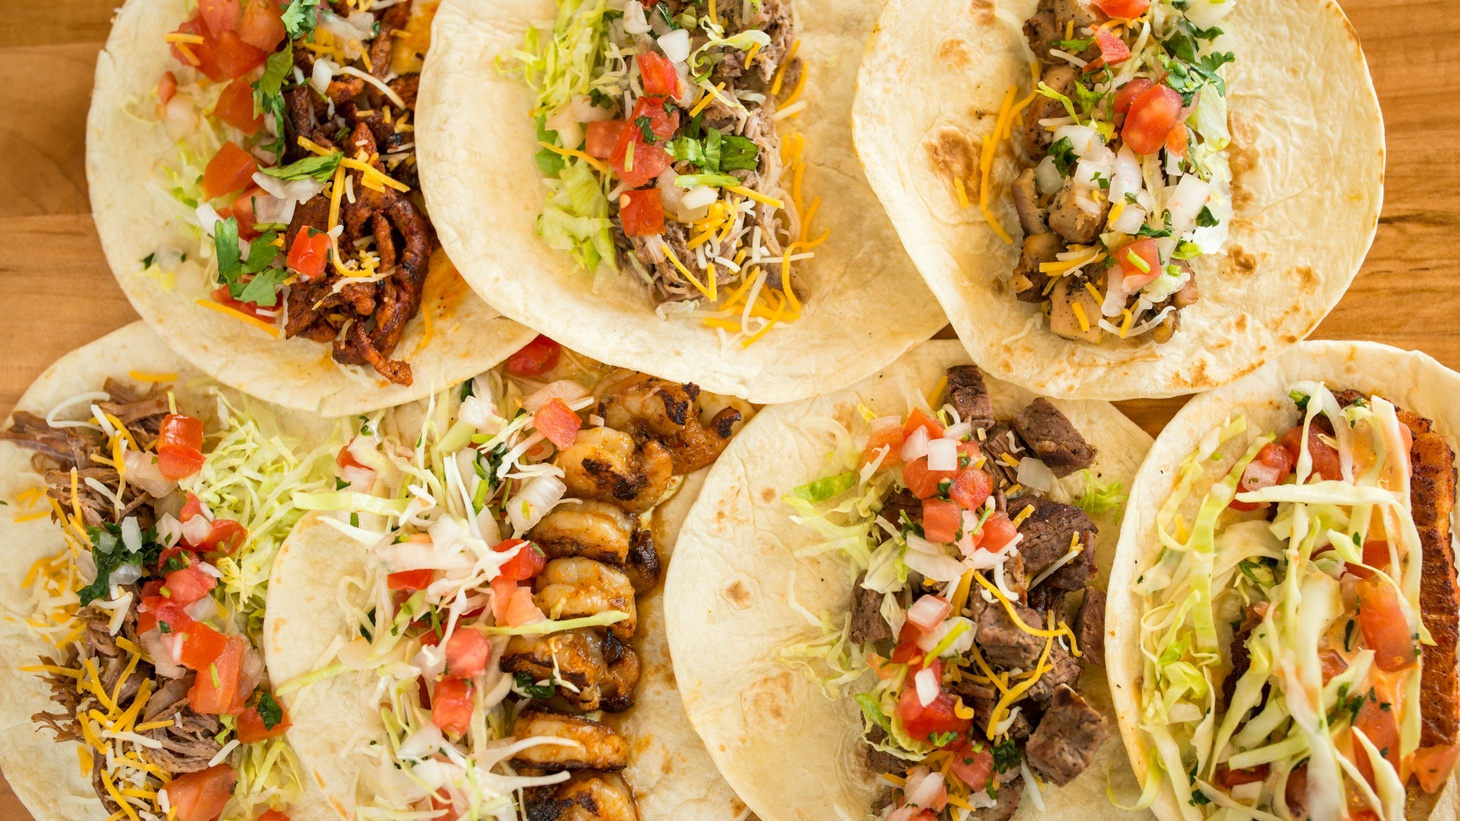 """Various tacos from District Taco in Washington DC, Virginia, and Philadelphia. """"We're not here if it's not for food. So food is the determinant of how we use land. It's where we live,"""" says author Mark Bittman."""